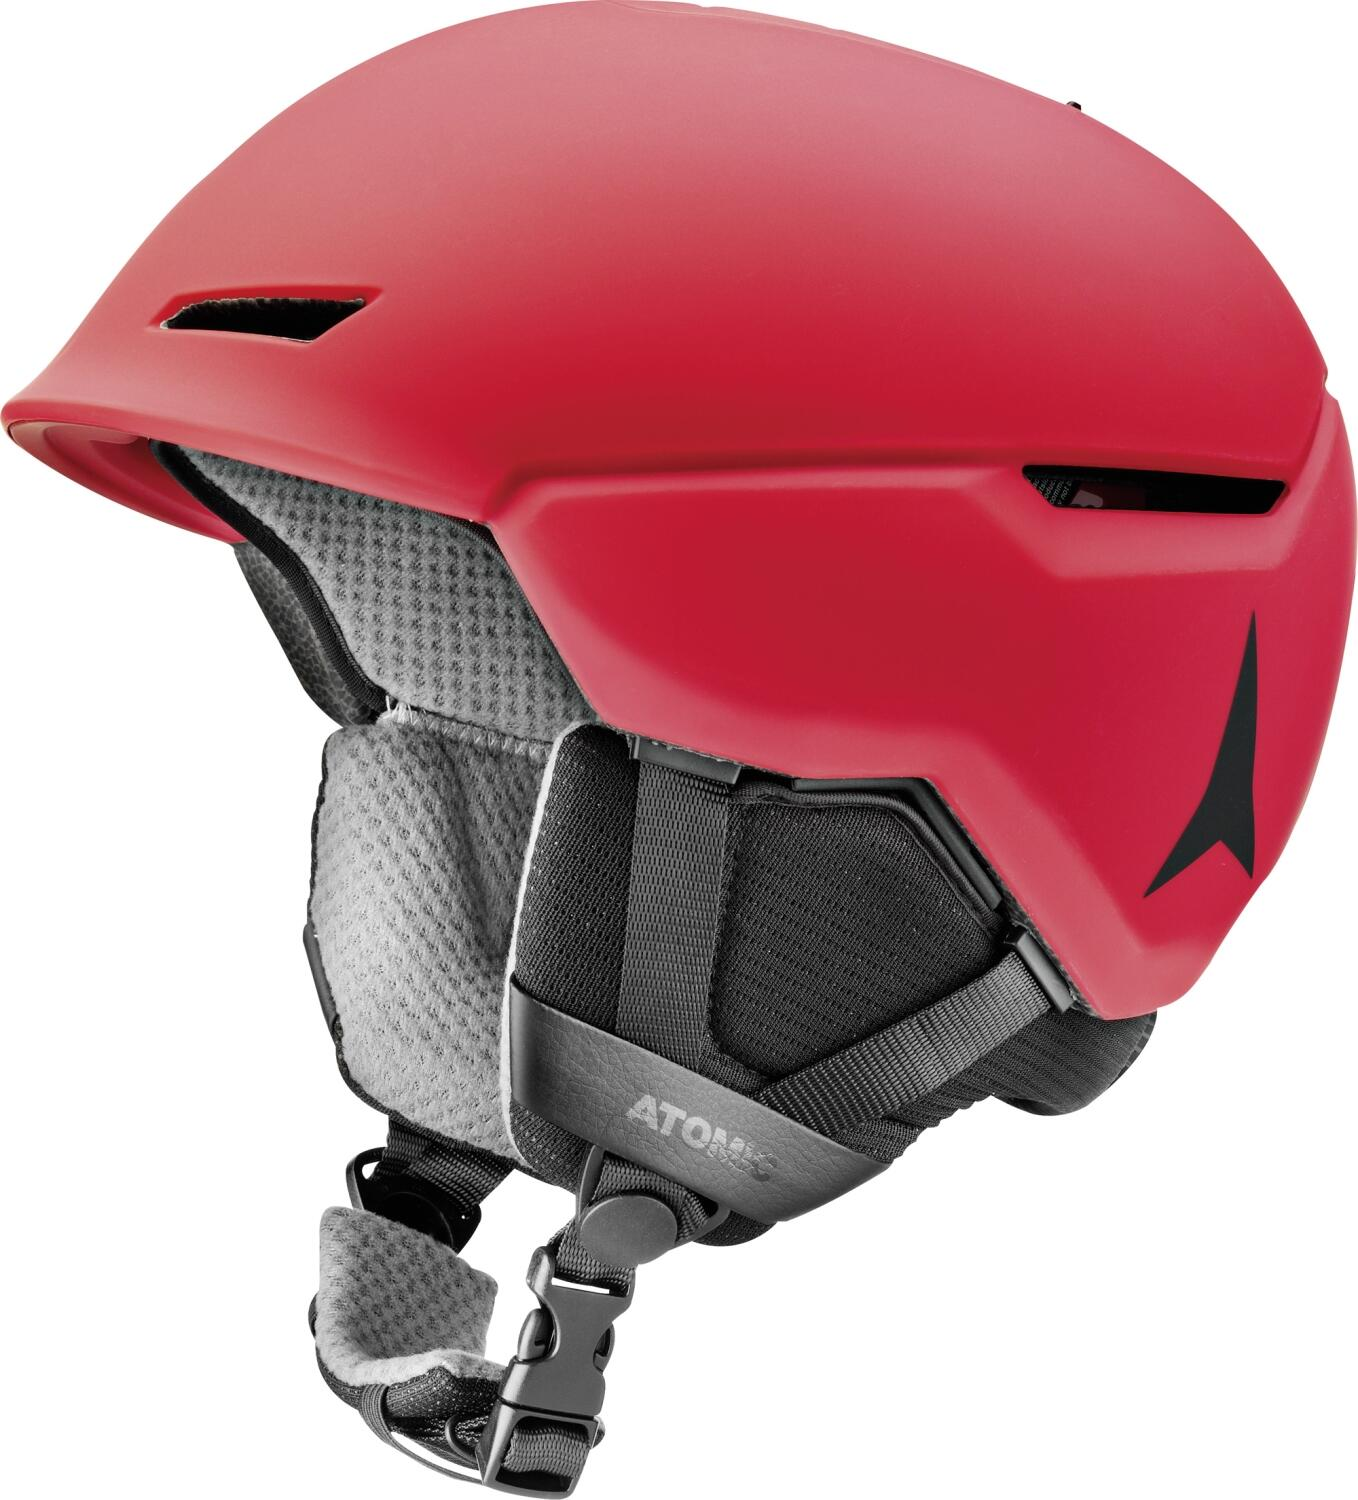 atomic-revent-all-mountain-skihelm-gr-ouml-szlig-e-51-55-cm-red-